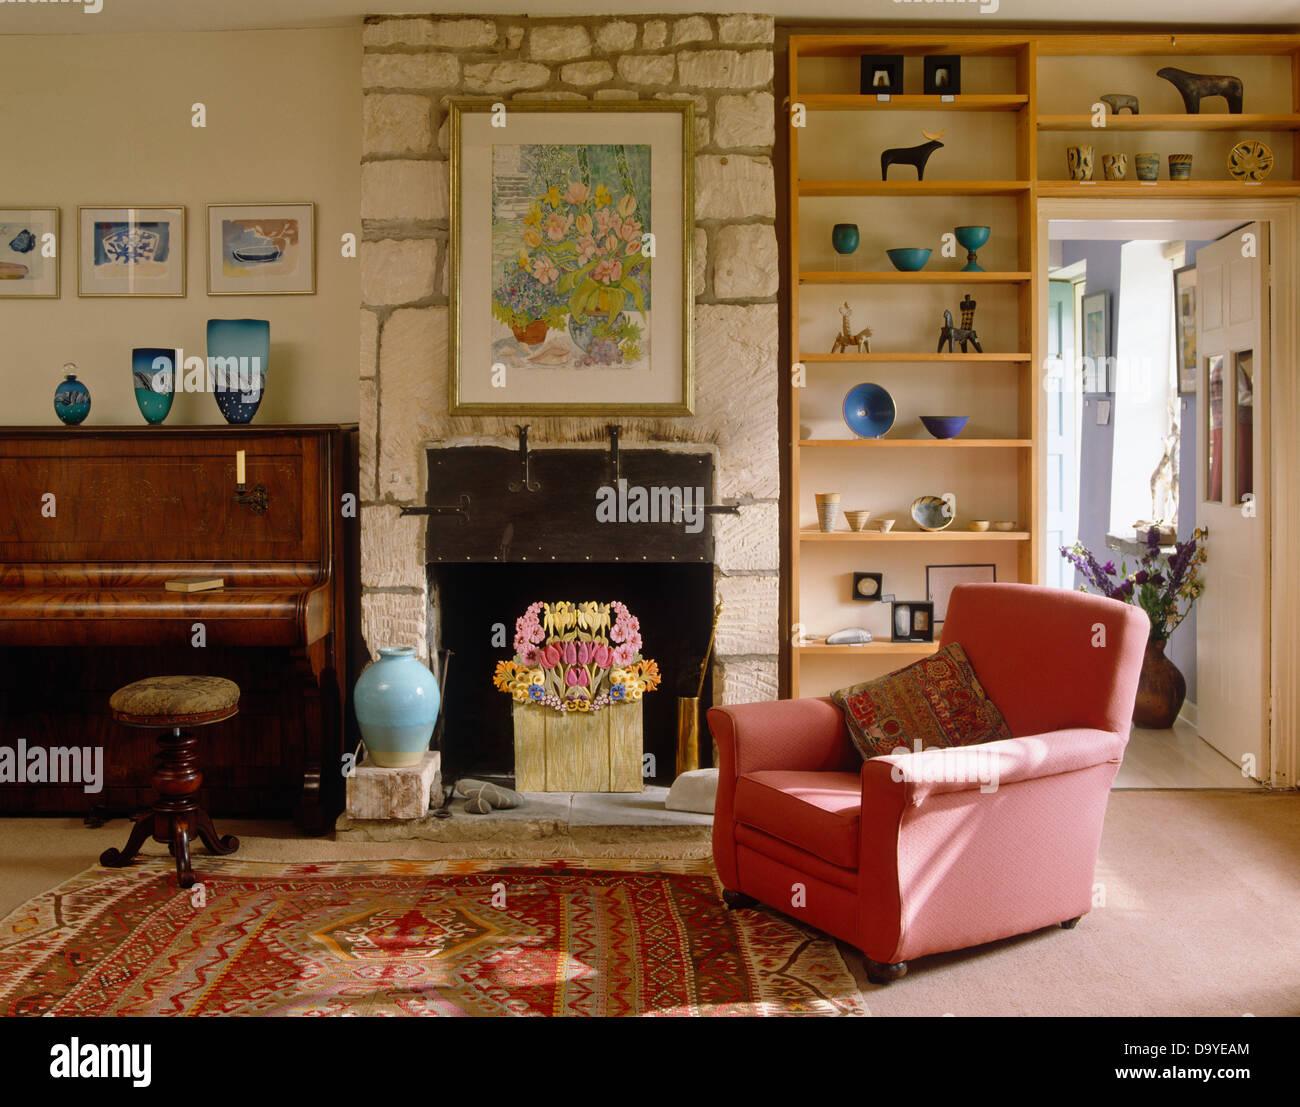 Pink Armchair And Open Wall Shelves In Country Living Room With Piano Beside Fireplace Exposed Stone